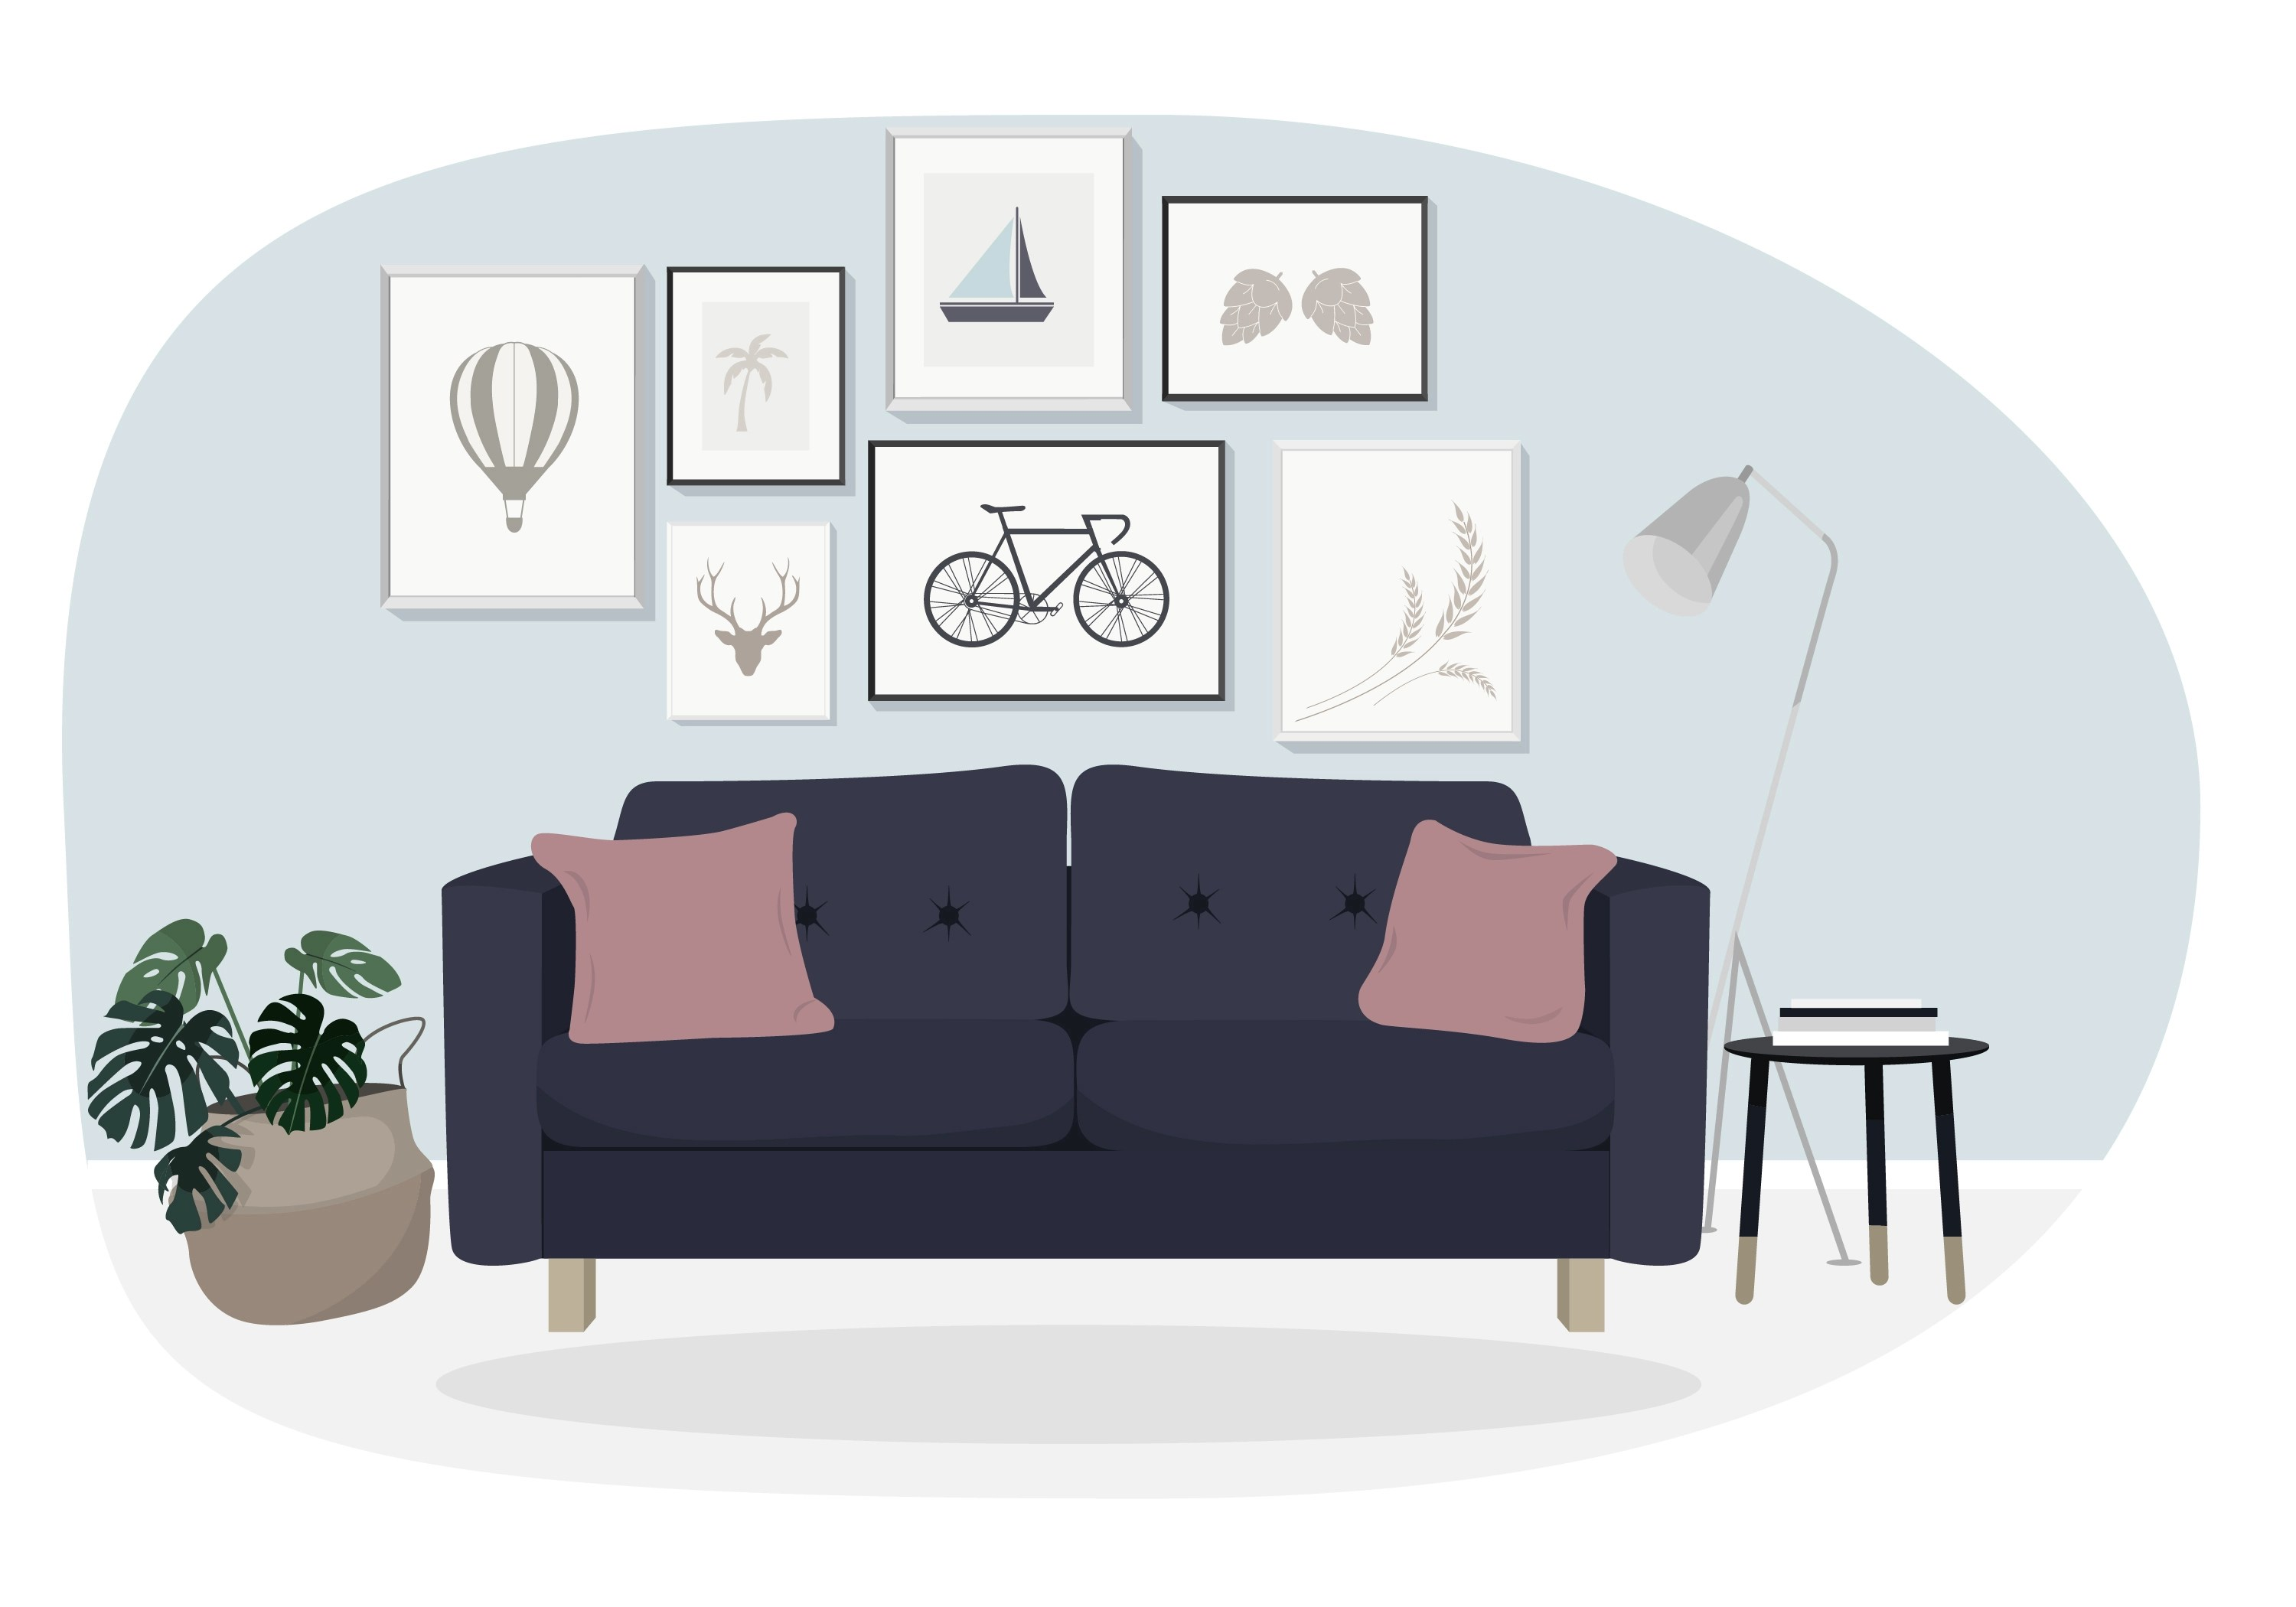 Sofa Set Vector Free Download Sofa Free Vector Art 14803 Free Downloads